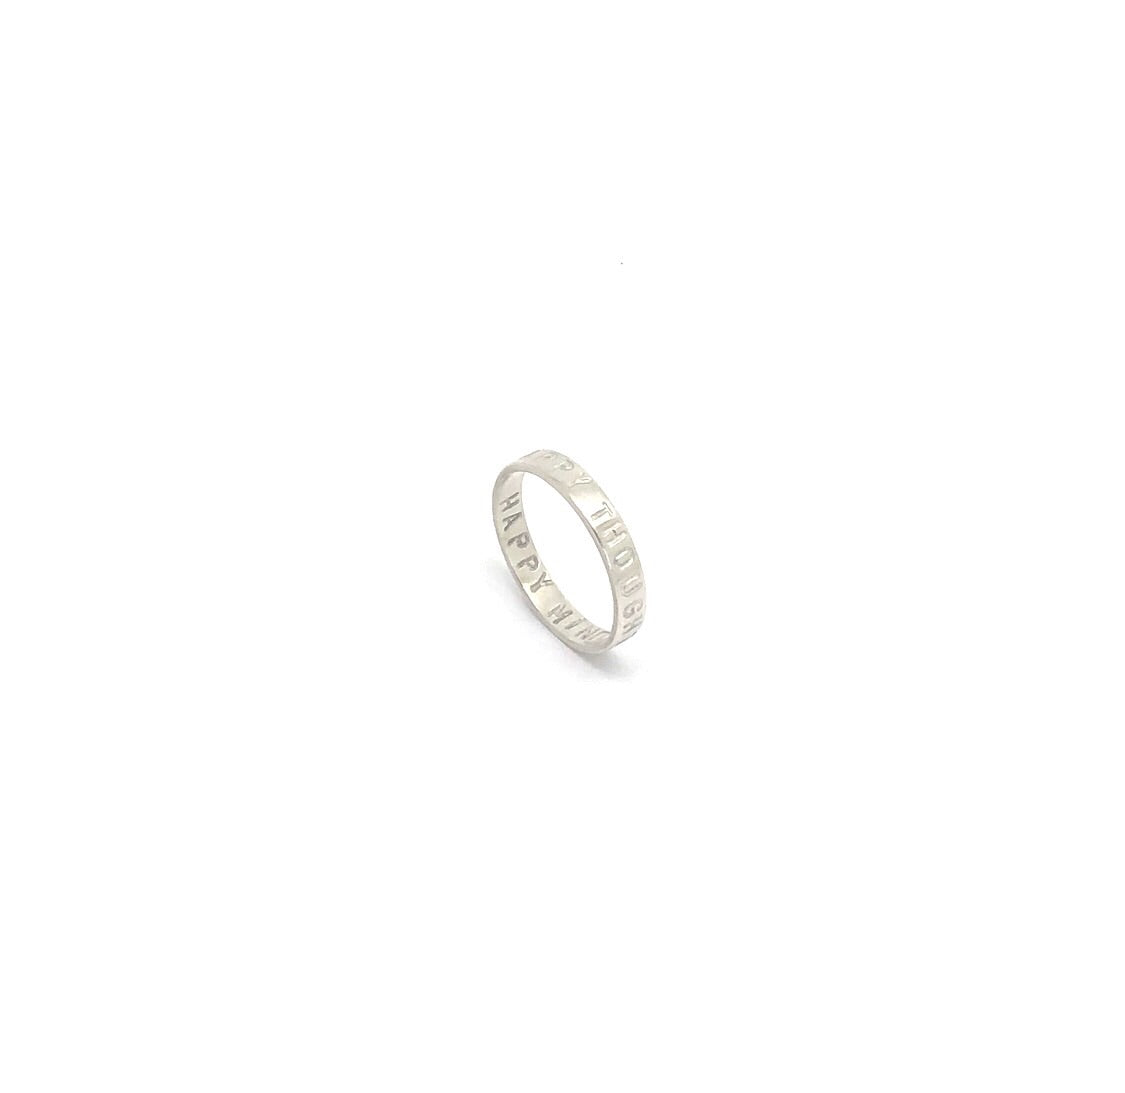 Thin Silver Ring 'happy thoughts happy mind'